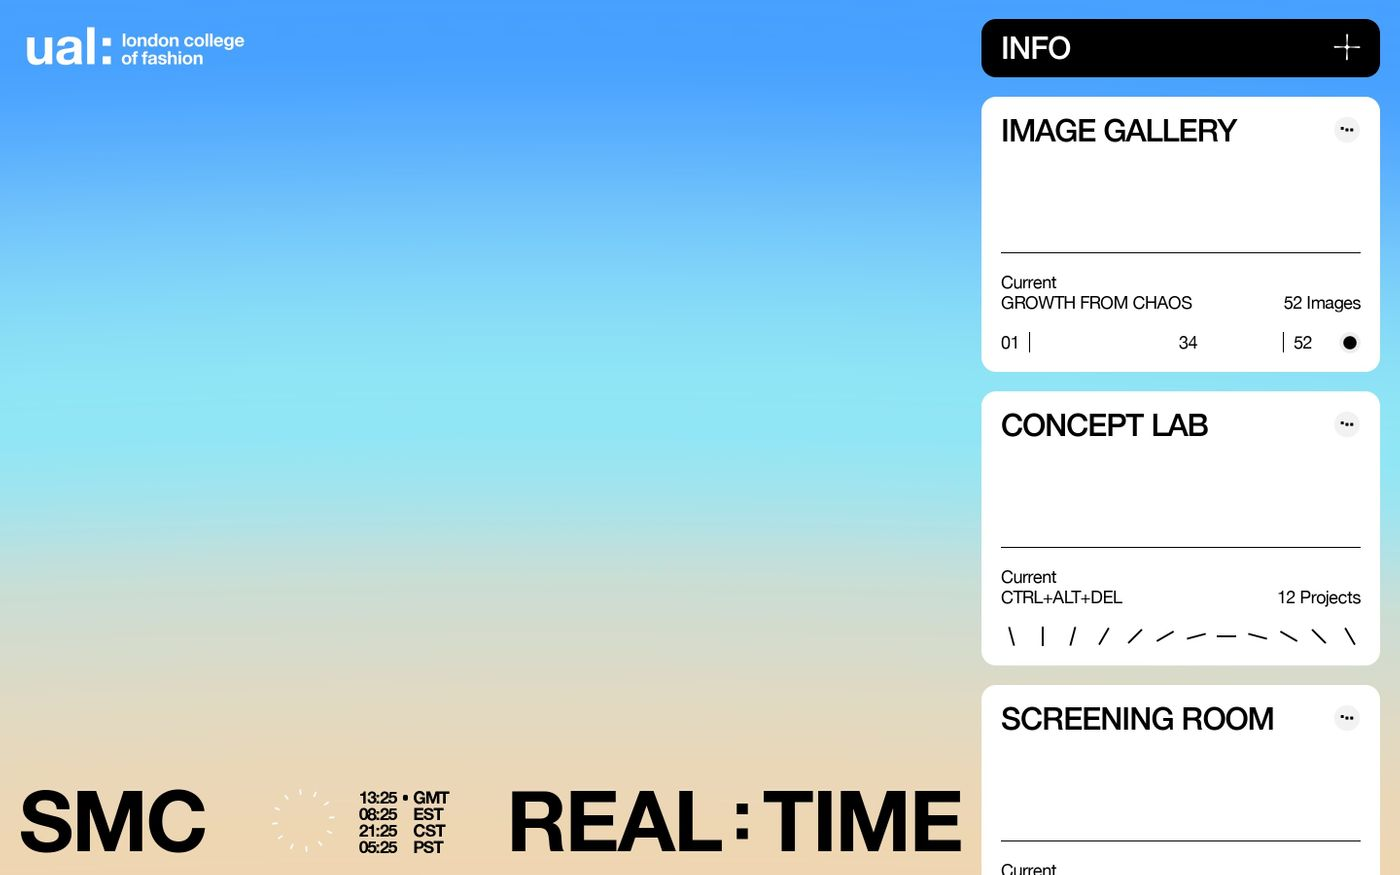 Screenshot of SMC Real-time website